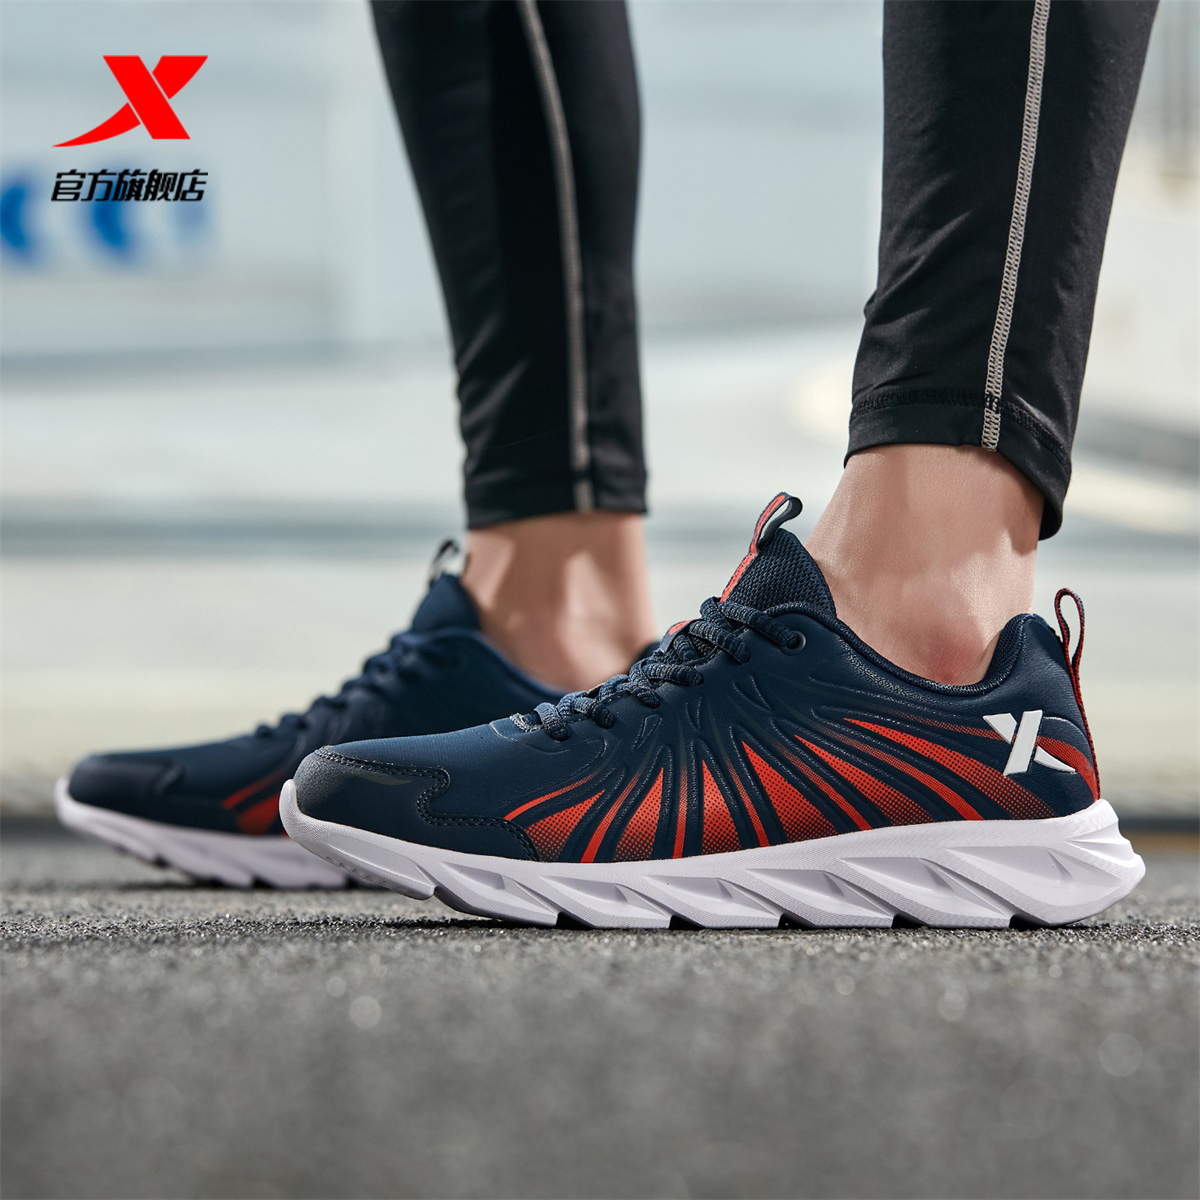 Special step sneaker men's shoes 2019 autumn and Winter new leather waterproof running shoes men's casual shoes running shoes men